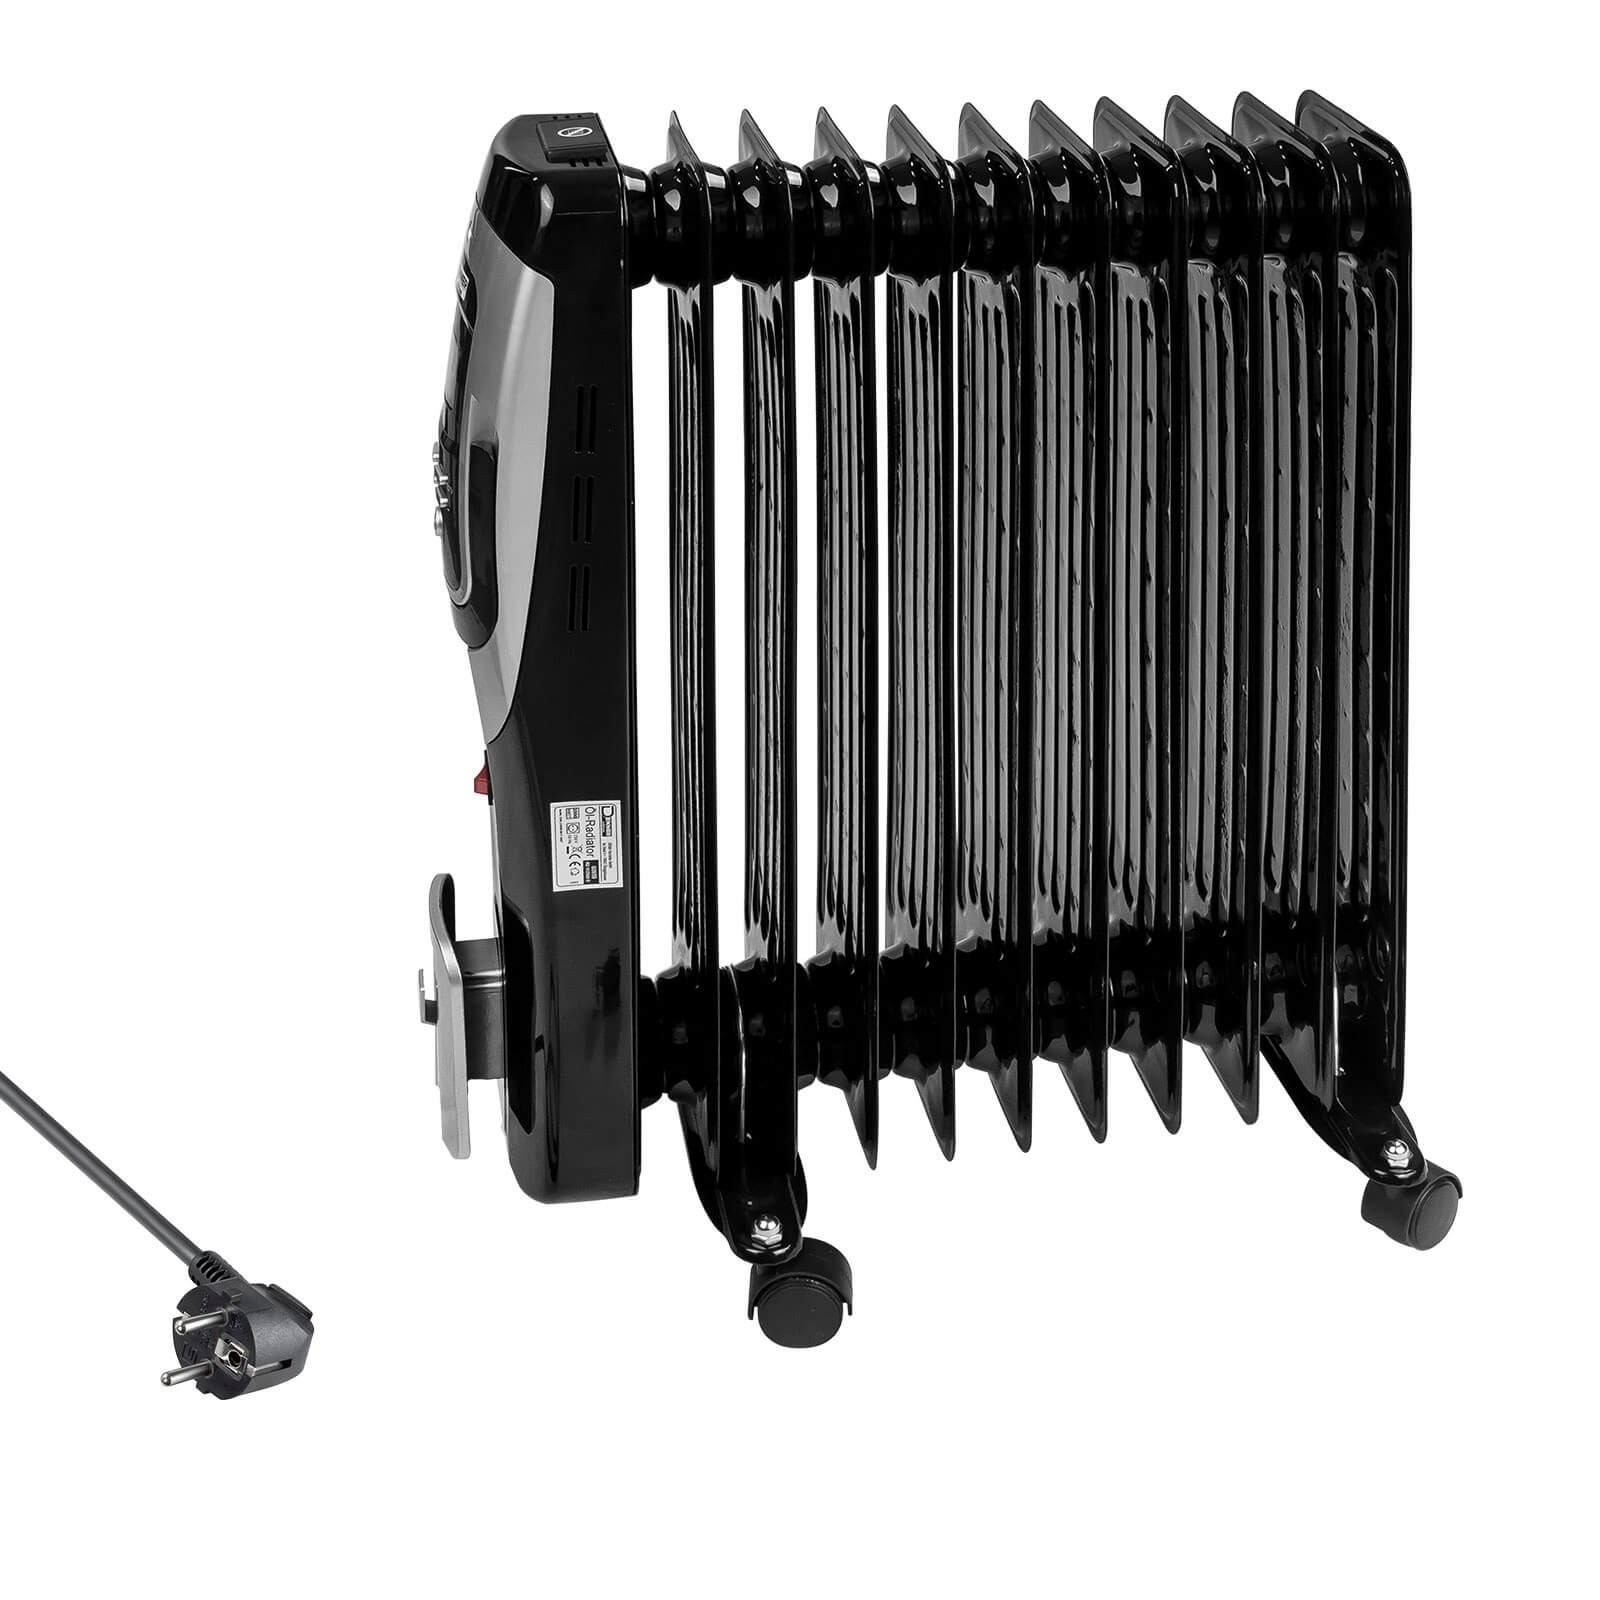 lradiator elektroheizung 11 rippen 2500 watt. Black Bedroom Furniture Sets. Home Design Ideas